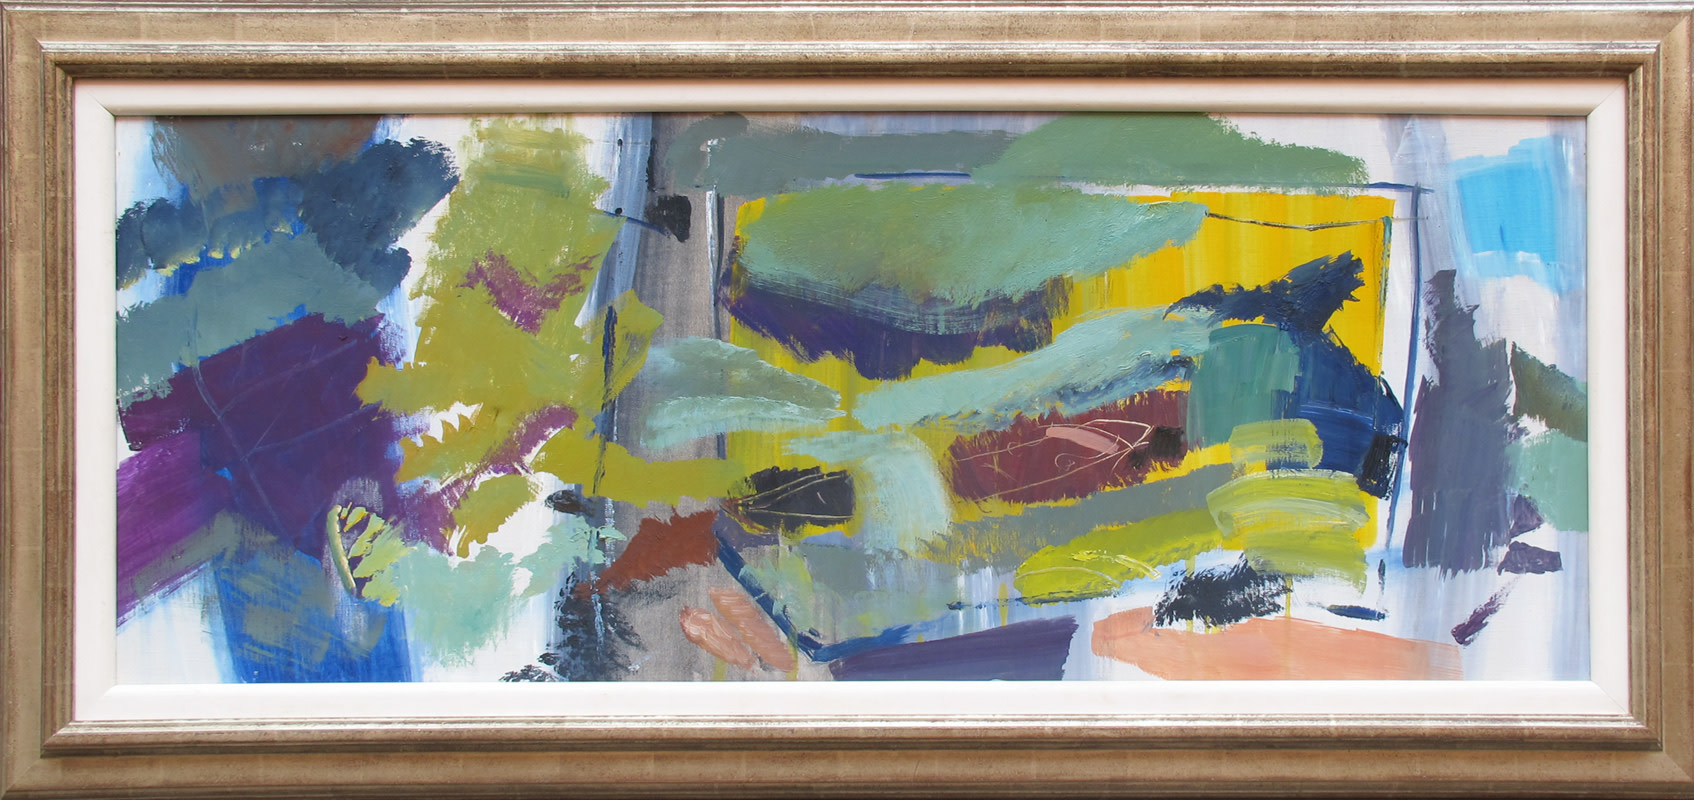 <span class=&#34;link fancybox-details-link&#34;><a href=&#34;/artists/52-ivon-hitchens/works/897/&#34;>View Detail Page</a></span><div class=&#34;artist&#34;><strong>Ivon Hitchens</strong></div> 1893 - 1979 <div class=&#34;title&#34;><em>Brown Boat Amid Green Foliage</em></div> <div class=&#34;signed_and_dated&#34;>signed, titled & dated 1969 label verso<br /> estate stamp verso<br /> </div> <div class=&#34;medium&#34;>oil on canvas</div> <div class=&#34;dimensions&#34;>46 x 117 cms (18 x 46 ins)<br /> framed: 63 x 134 cms (25 x 53 ins)</div>